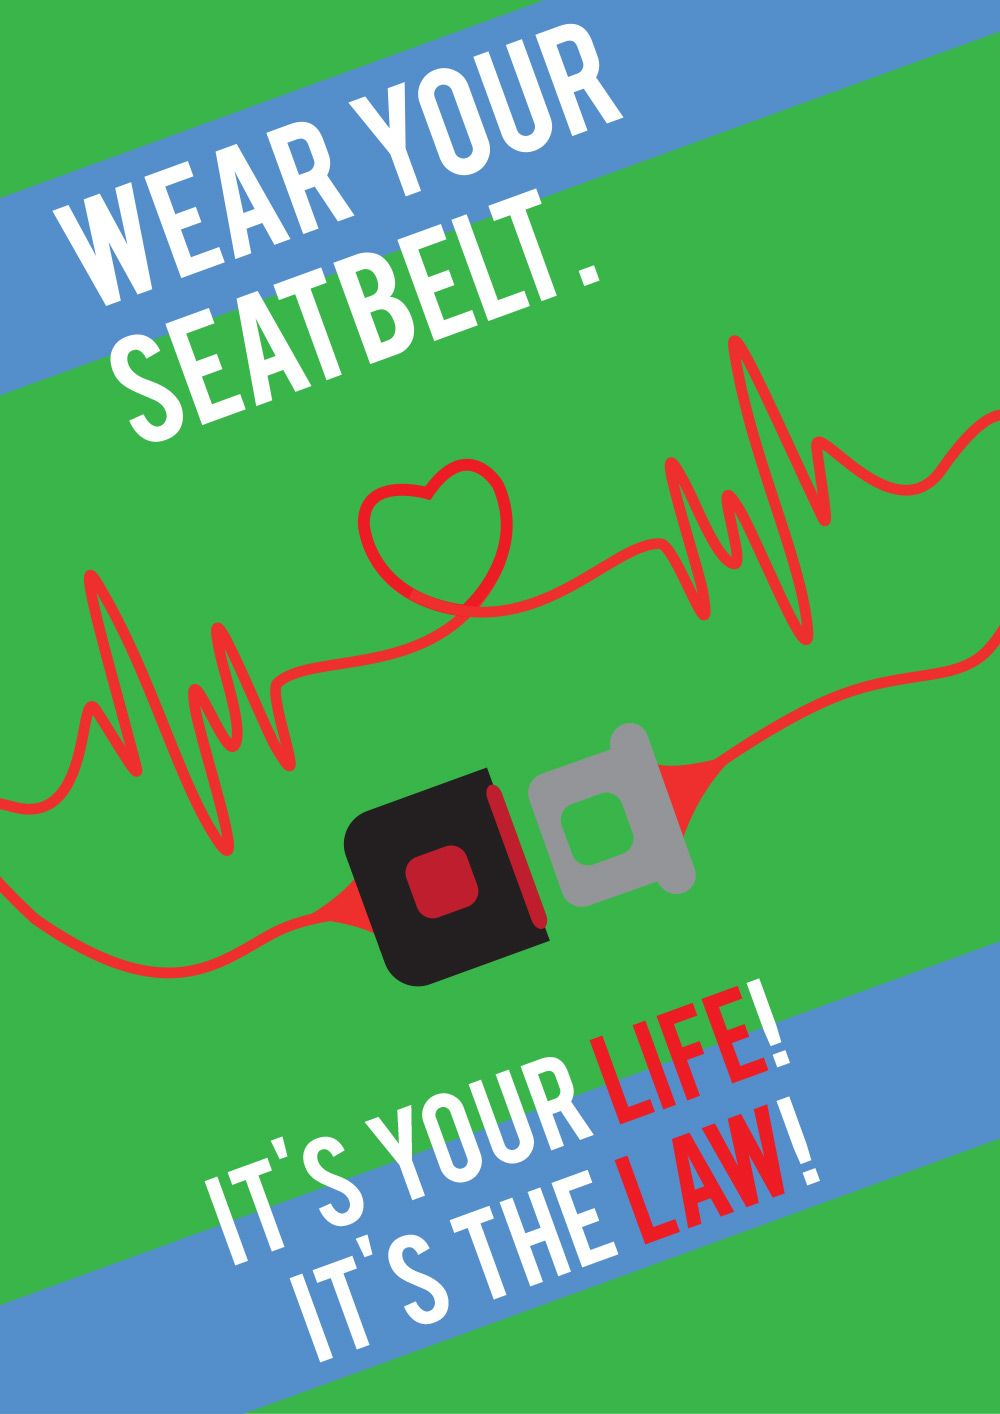 Wear your seatbelt Road safety slogans, Safety slogans